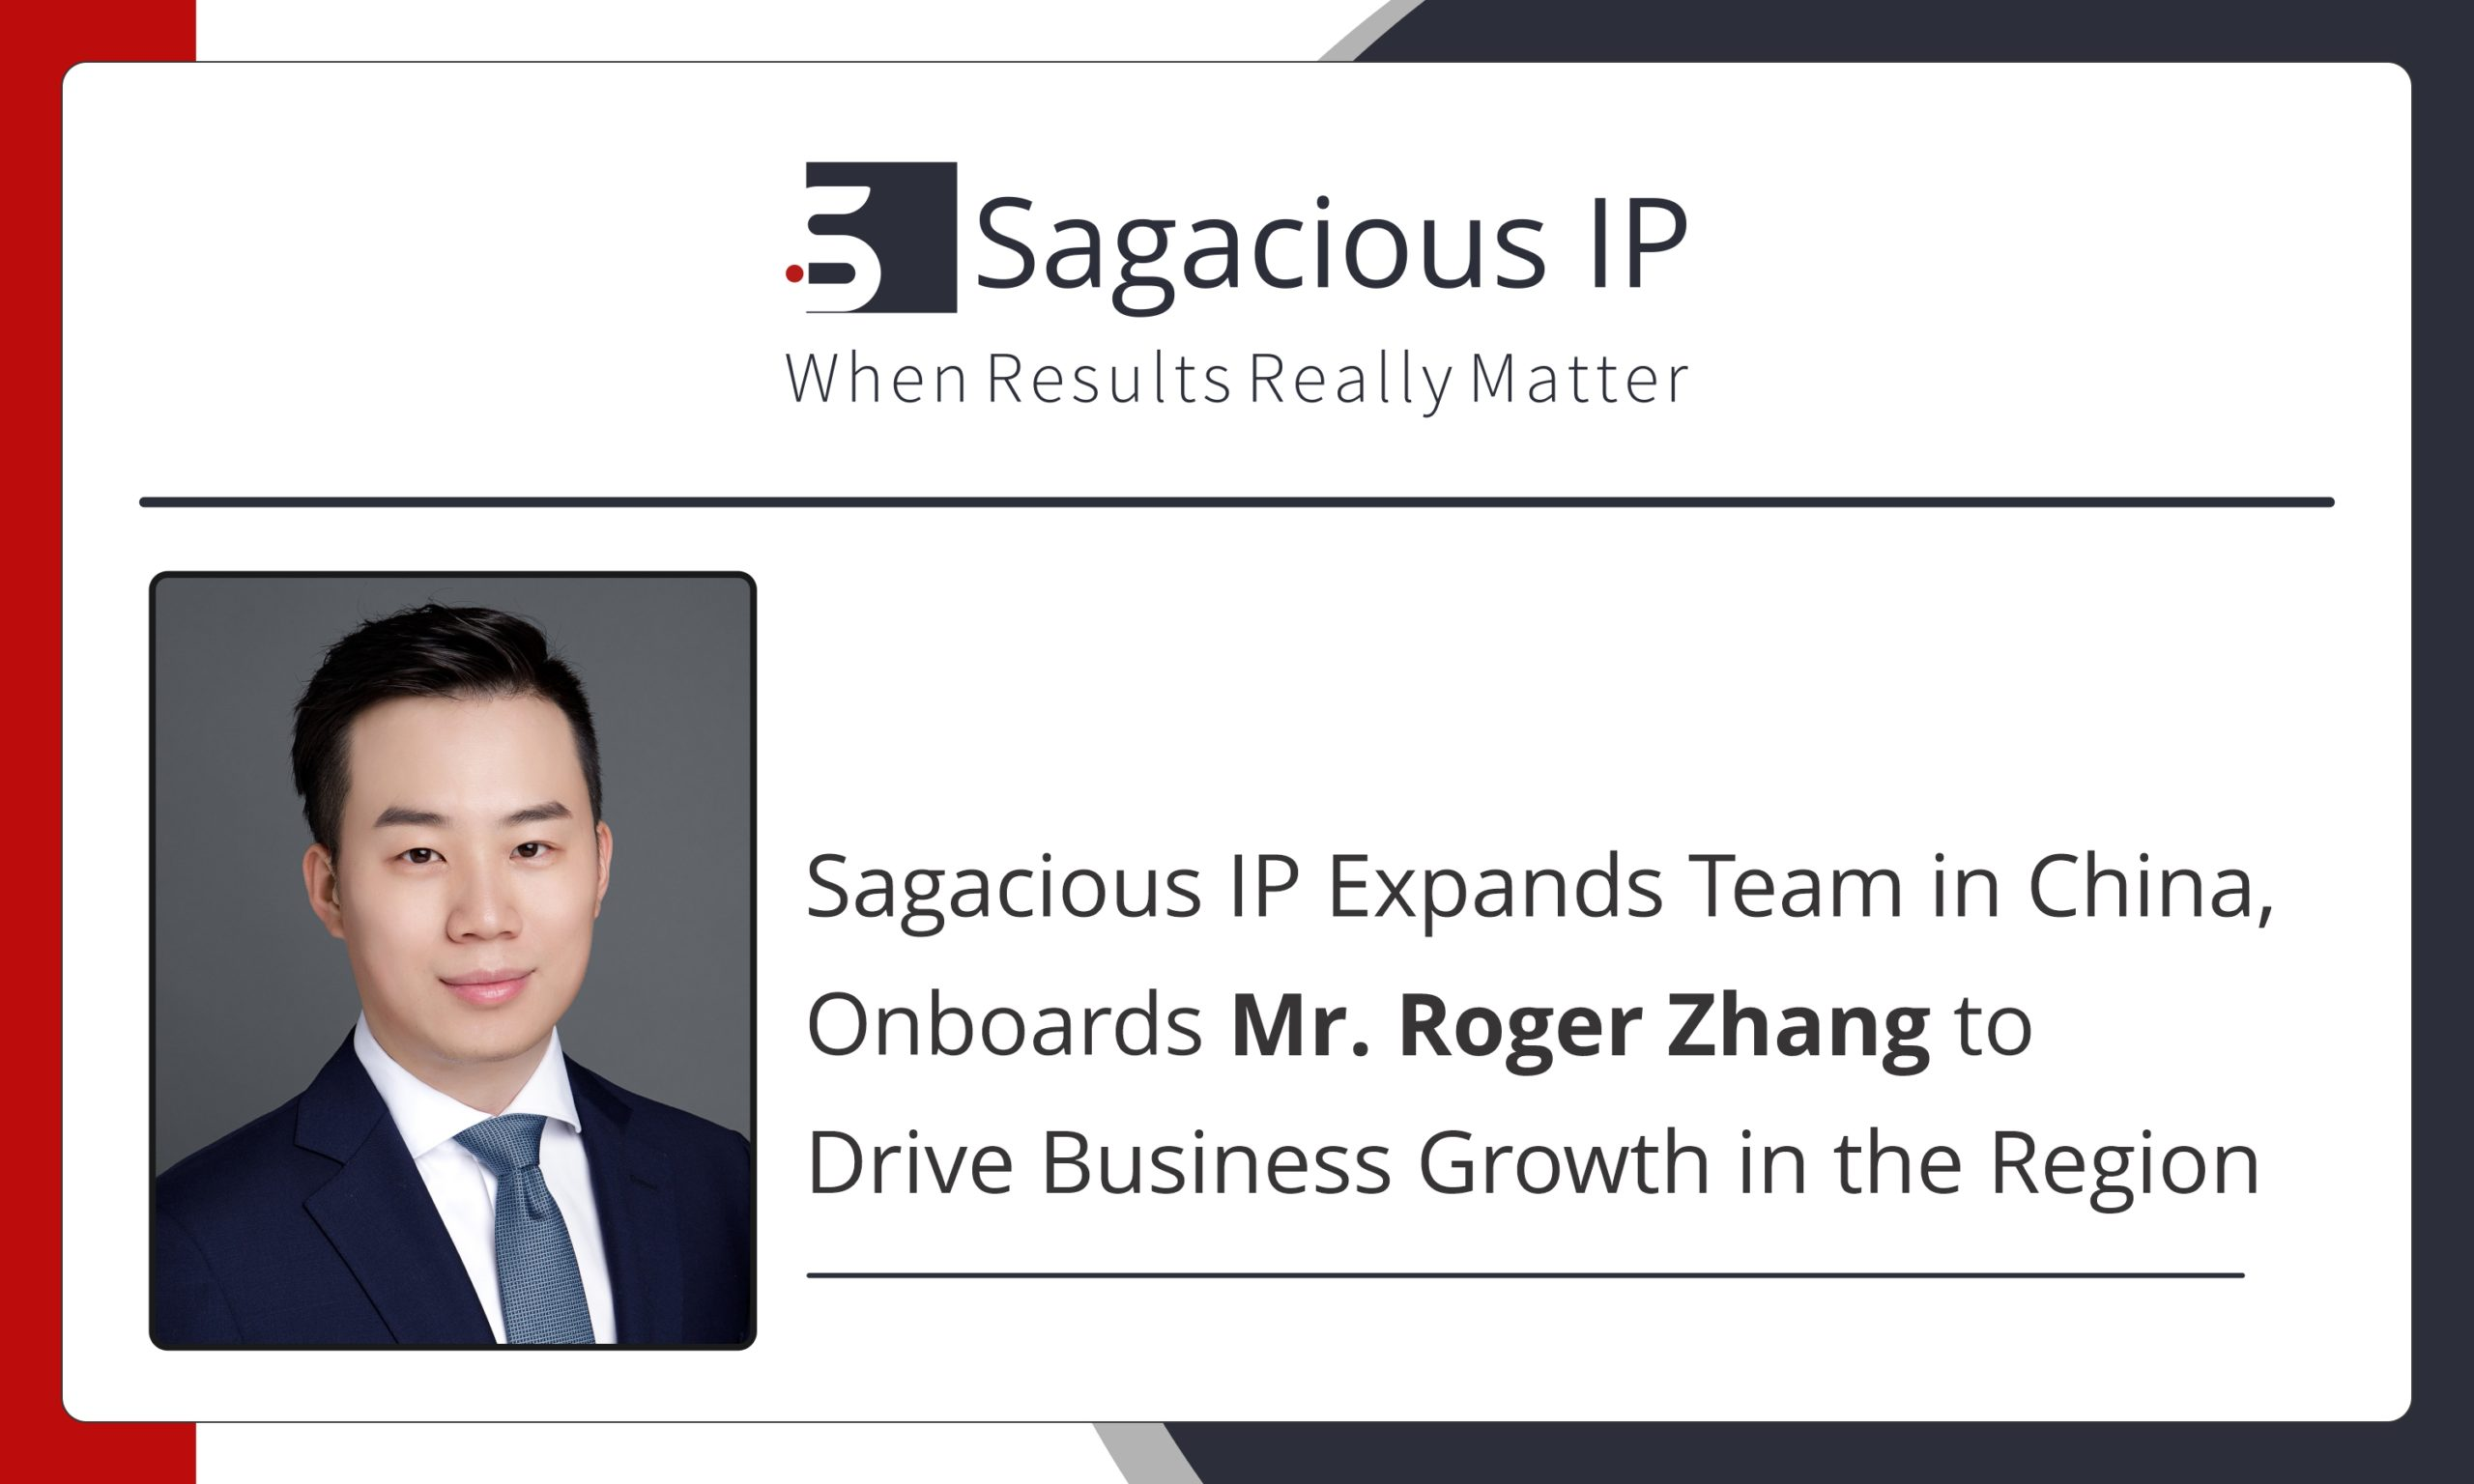 Sagacious IP Expands Team in China, Onboards Mr. Roger Zhang to Drive Business Growth in the Region